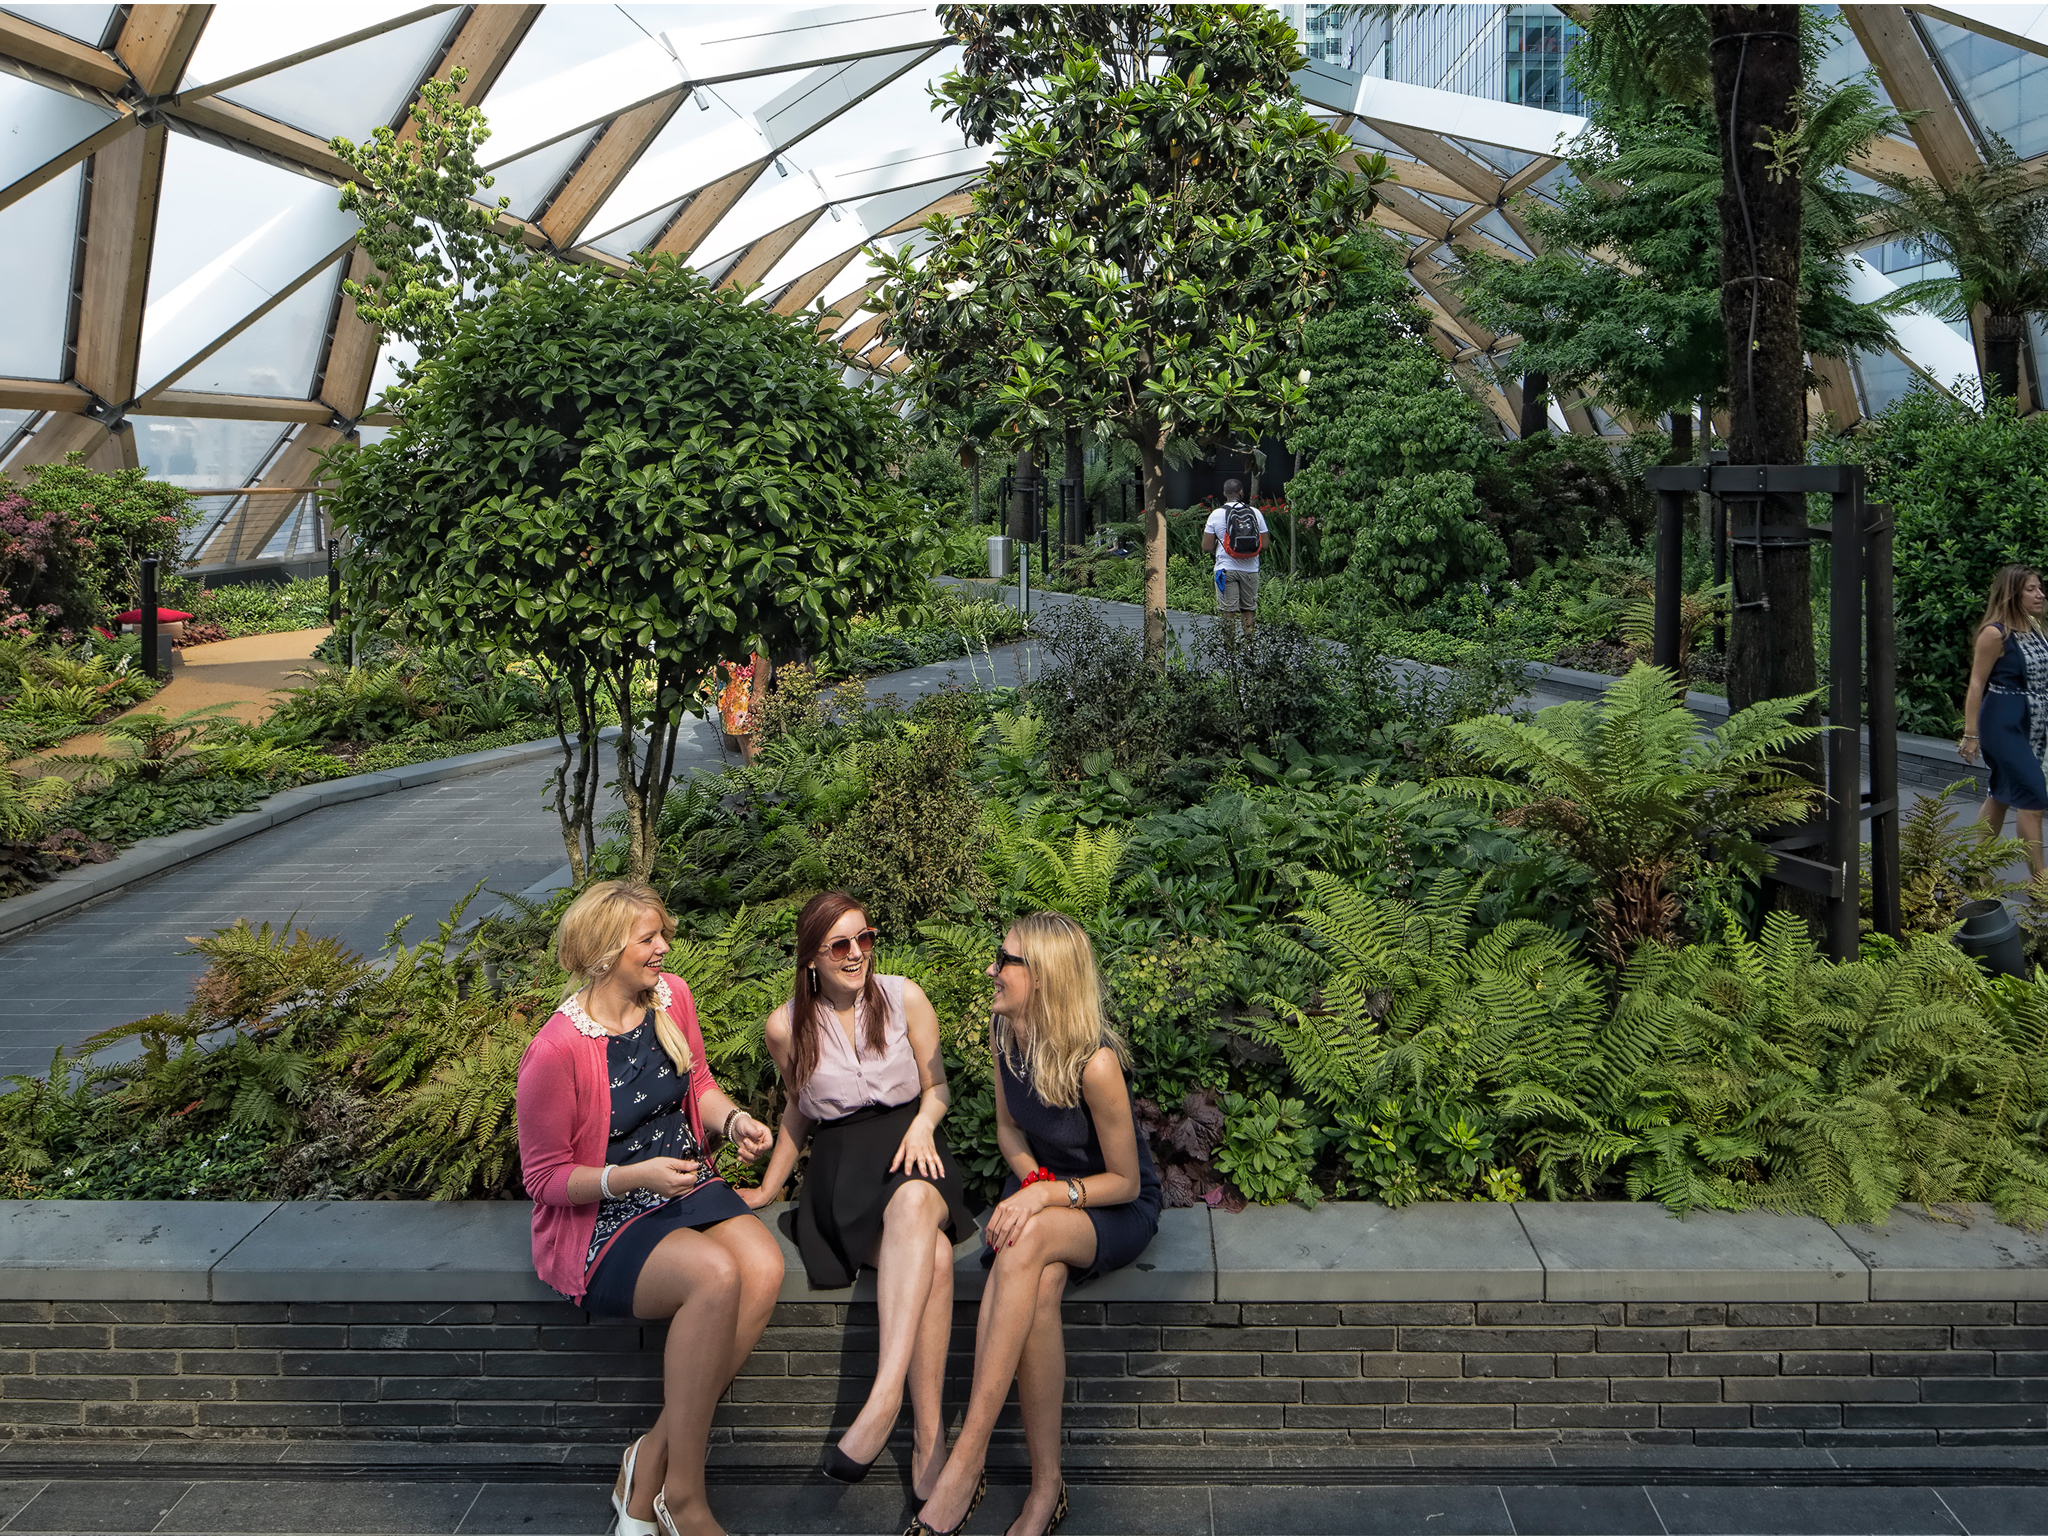 Crossrail Place Gardens